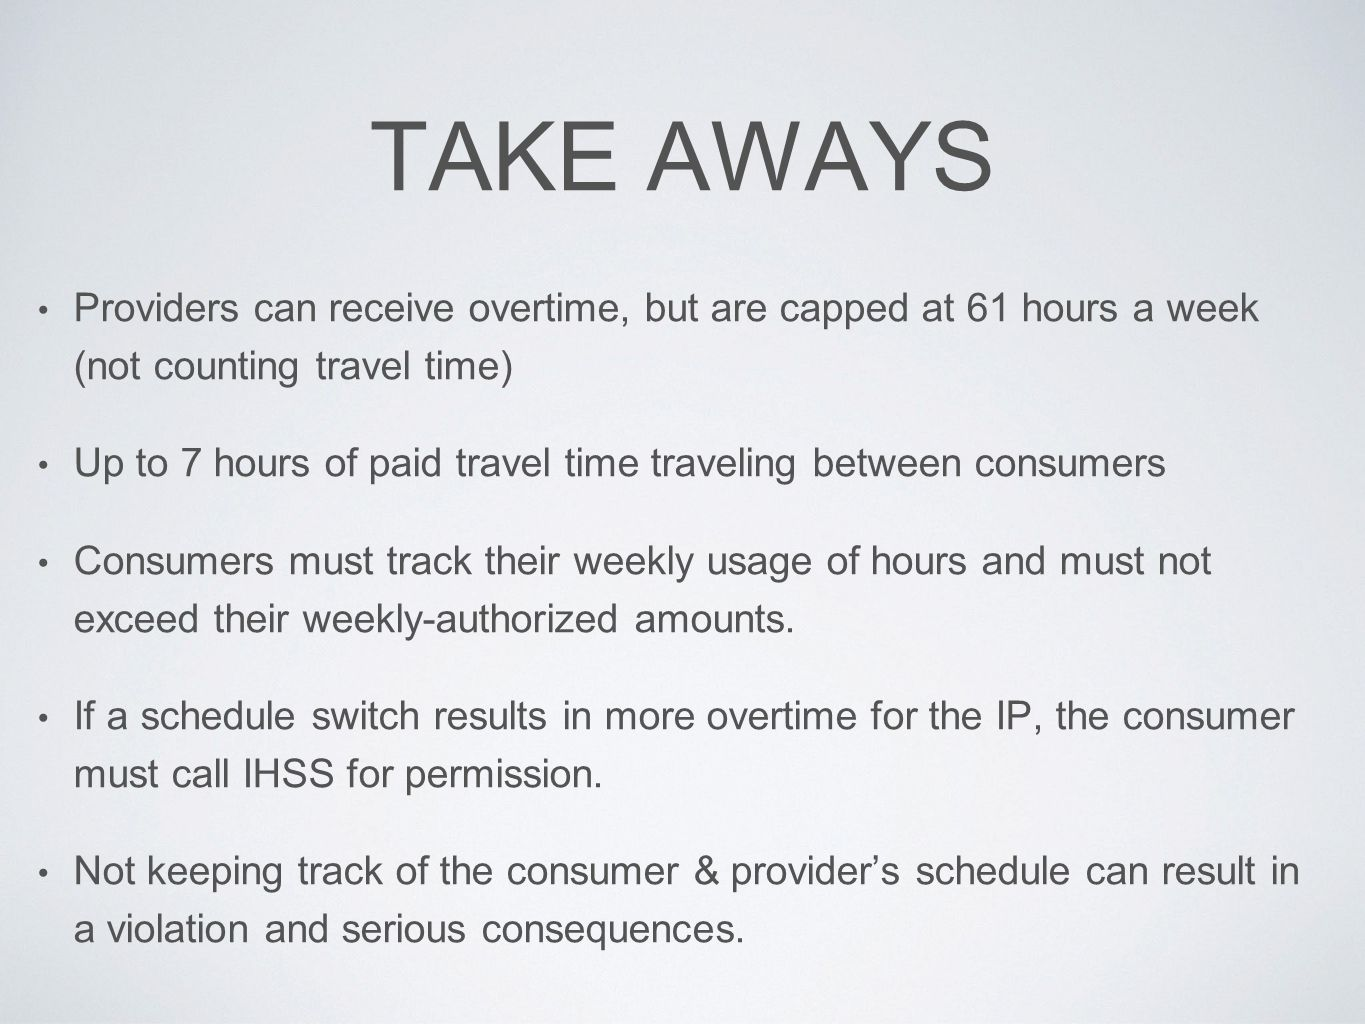 TAKE AWAYS Providers can receive overtime, but are capped at 61 hours a week (not counting travel time)